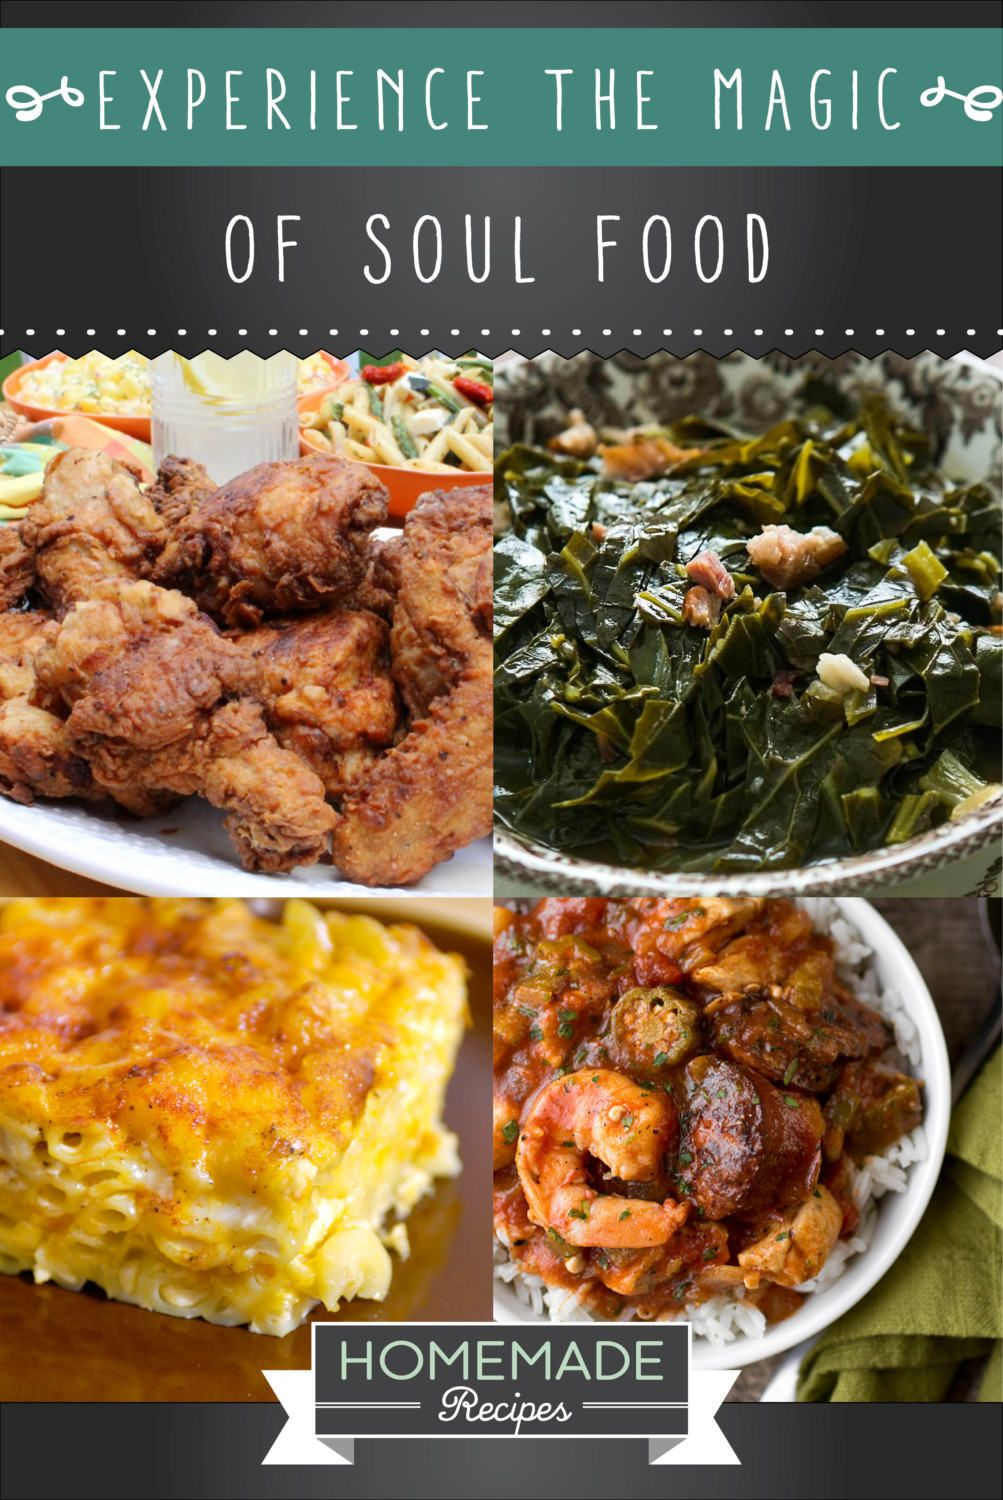 Experience the magic of these 14 soul food recipes soul food experience the magic of these 14 soul food recipes forumfinder